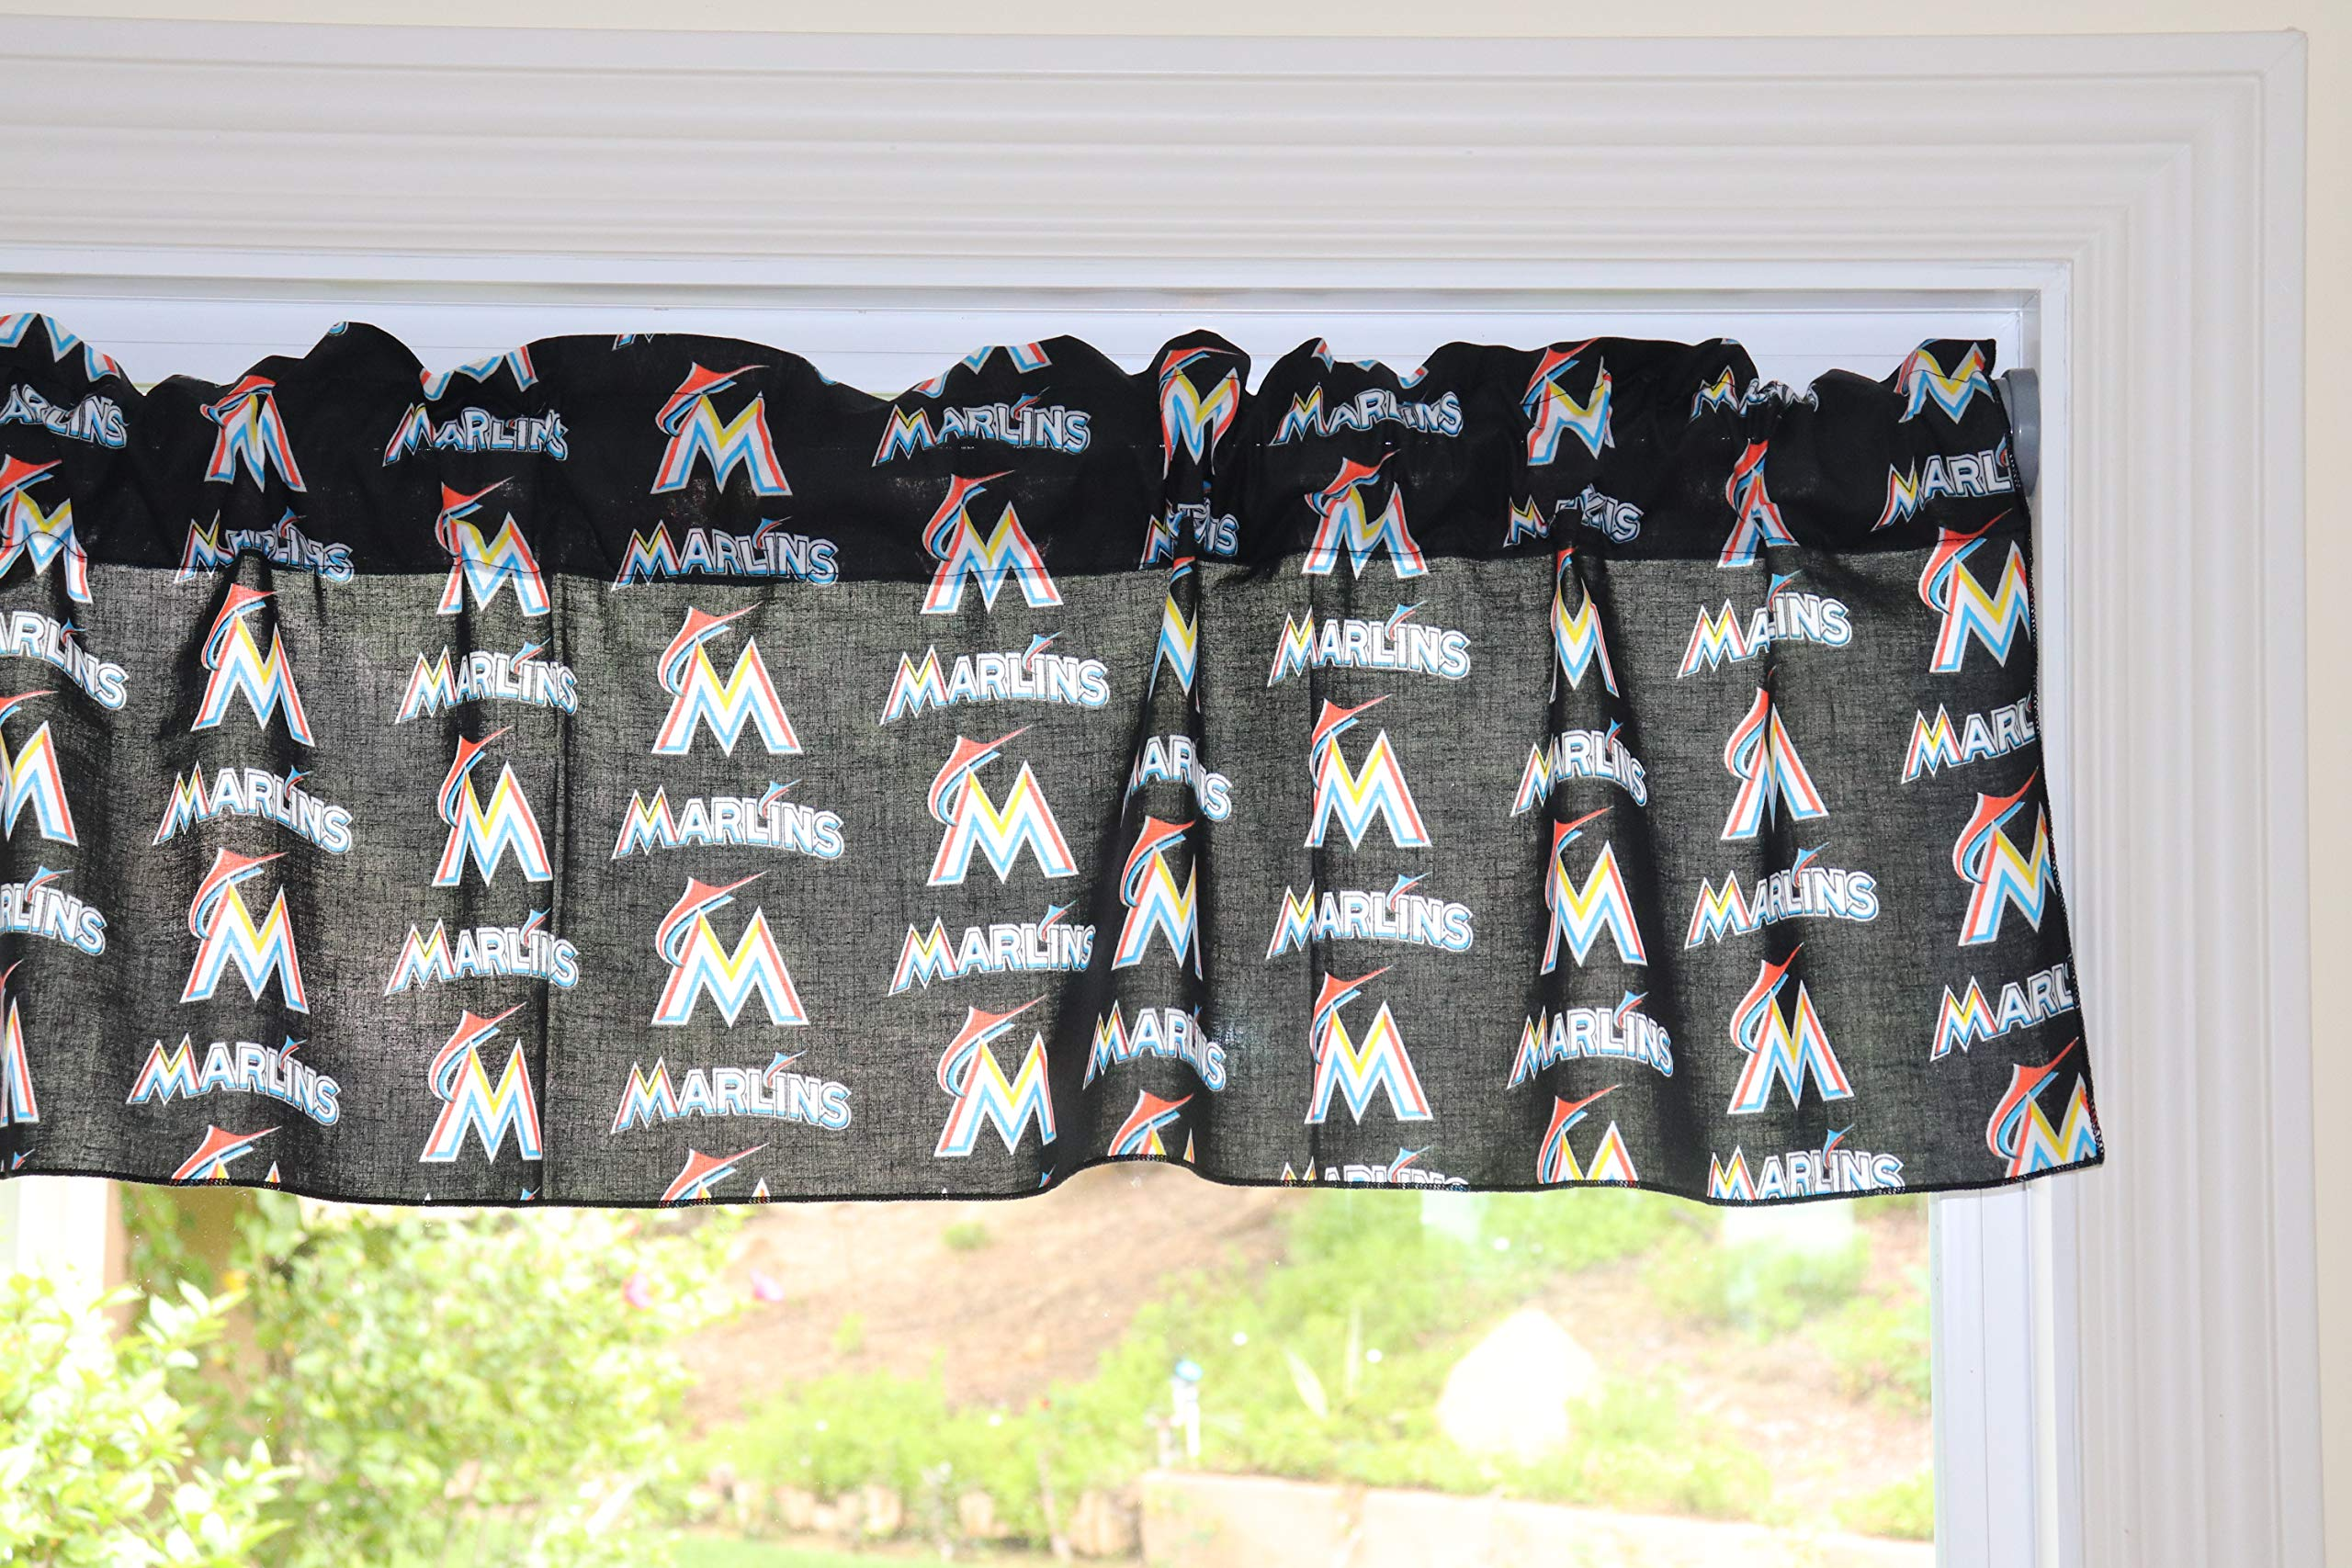 lovemyfabric Baseball Cotton Window Valance 100% Cotton Print MLB Sports Team Miami Marlins Events Kitchen Dining Room Bedroom Window Decor (58'' Wide) (14'' Tall) by lovemyfabric